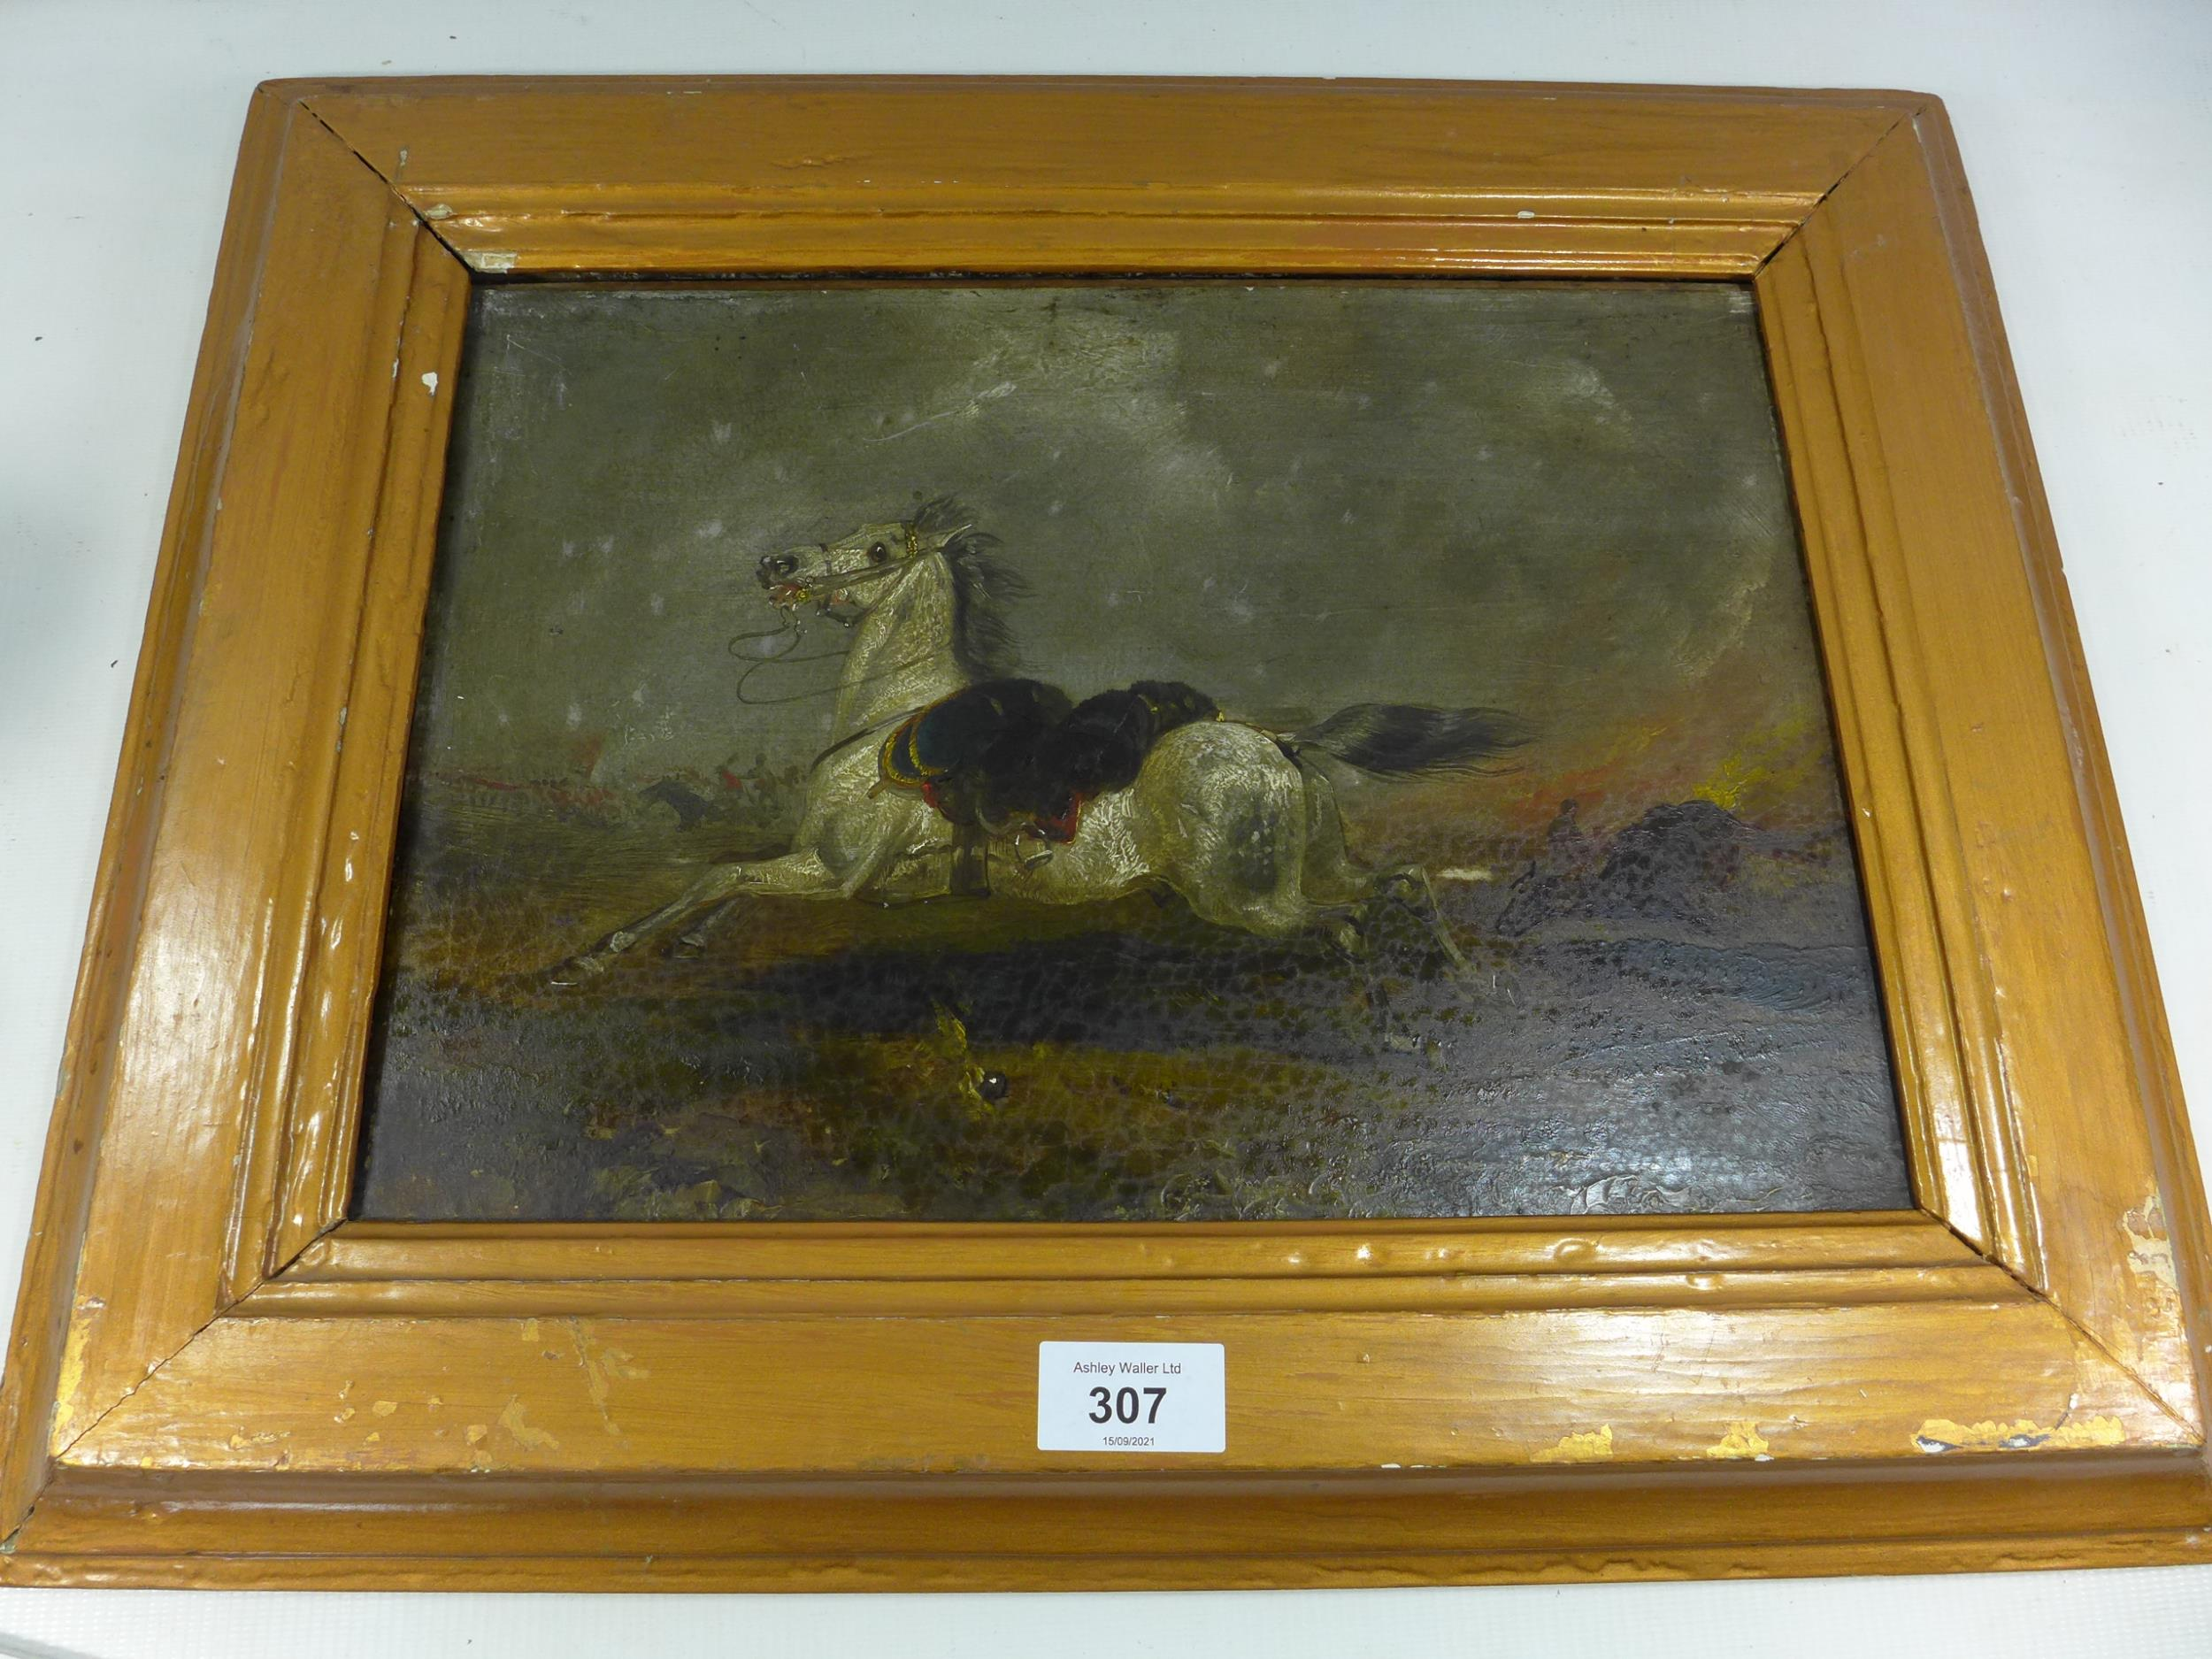 A 19TH CENTURY OIL ON PANEL PAINTING OF A GREY RIDERLESS HORSE IN A NAPOLEONIC WAR BATTLE SCENE,